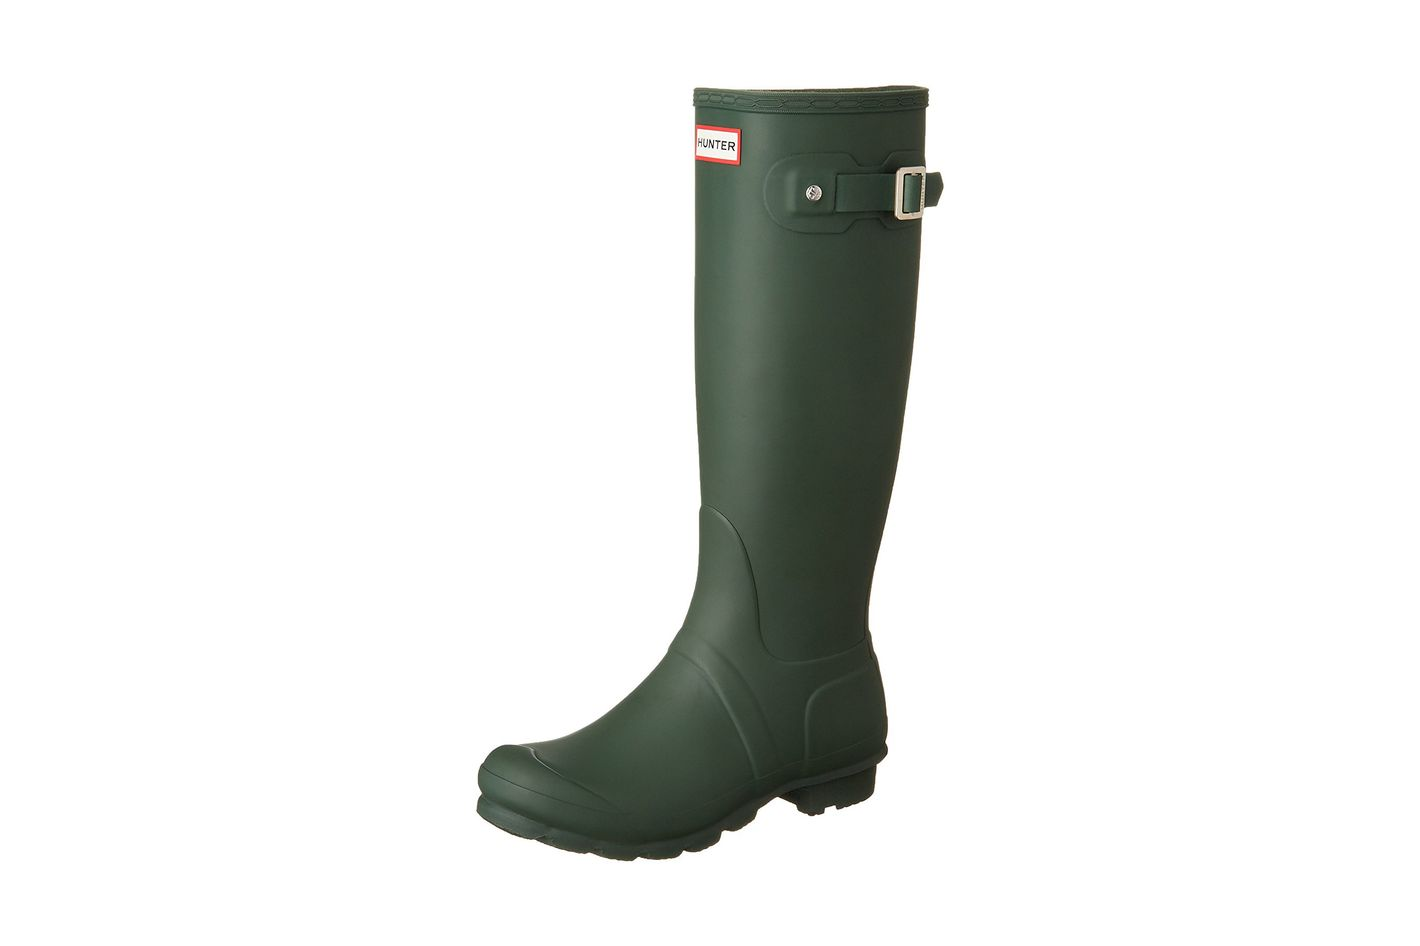 top dog comfortable the we review for wellies comforter rain walking best boots